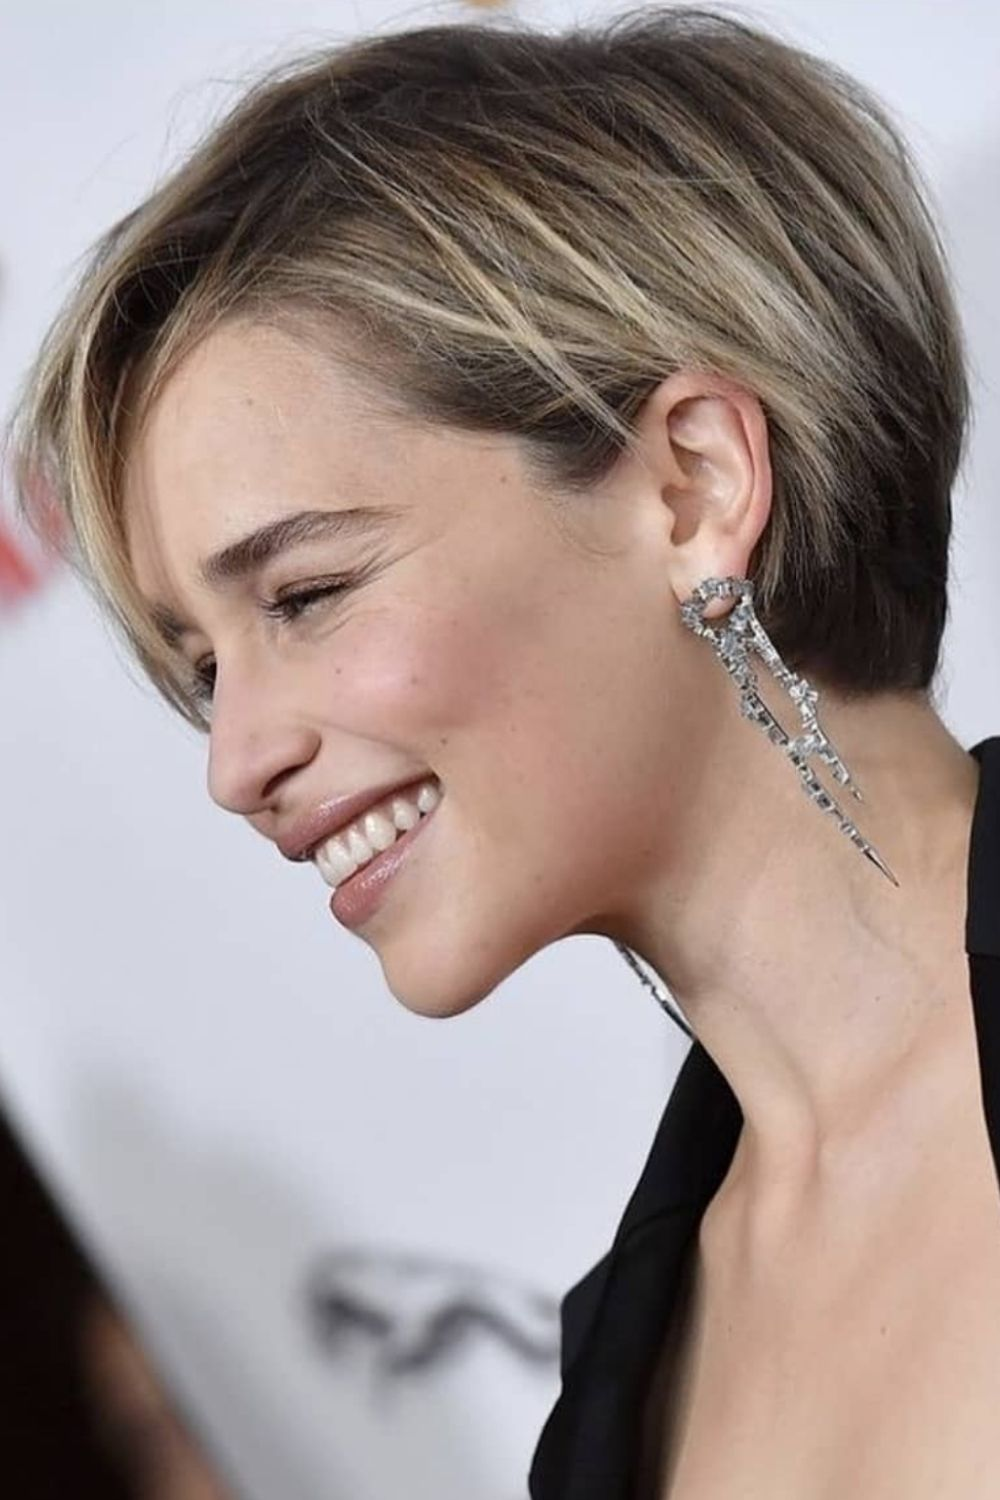 Cool short haircut for women 2021 to be stylish !